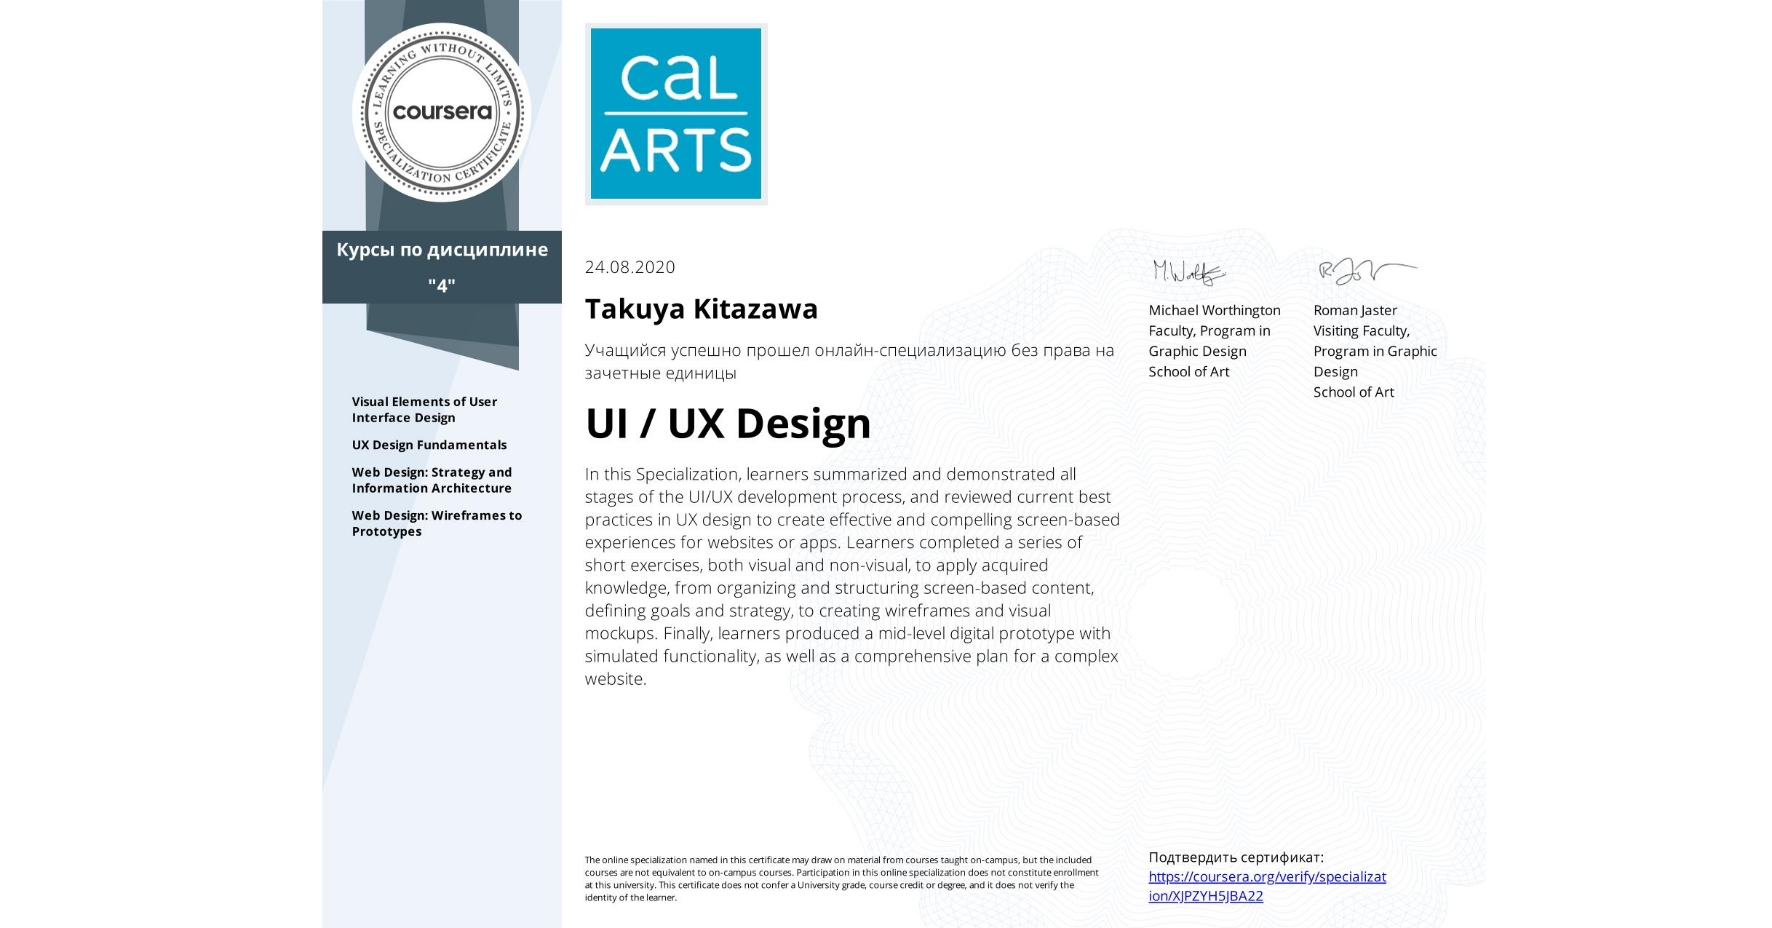 View certificate for Takuya Kitazawa, UI / UX Design, offered through Coursera. In this Specialization, learners summarized and demonstrated all stages of the UI/UX development process, and reviewed current best practices in UX design to create effective and compelling screen-based experiences for websites or apps. Learners completed a series of short exercises, both visual and non-visual, to apply acquired knowledge, from organizing and structuring screen-based content, defining goals and strategy, to creating wireframes and visual mockups. Finally, learners produced a mid-level digital prototype with simulated functionality, as well as a comprehensive plan for a complex website.